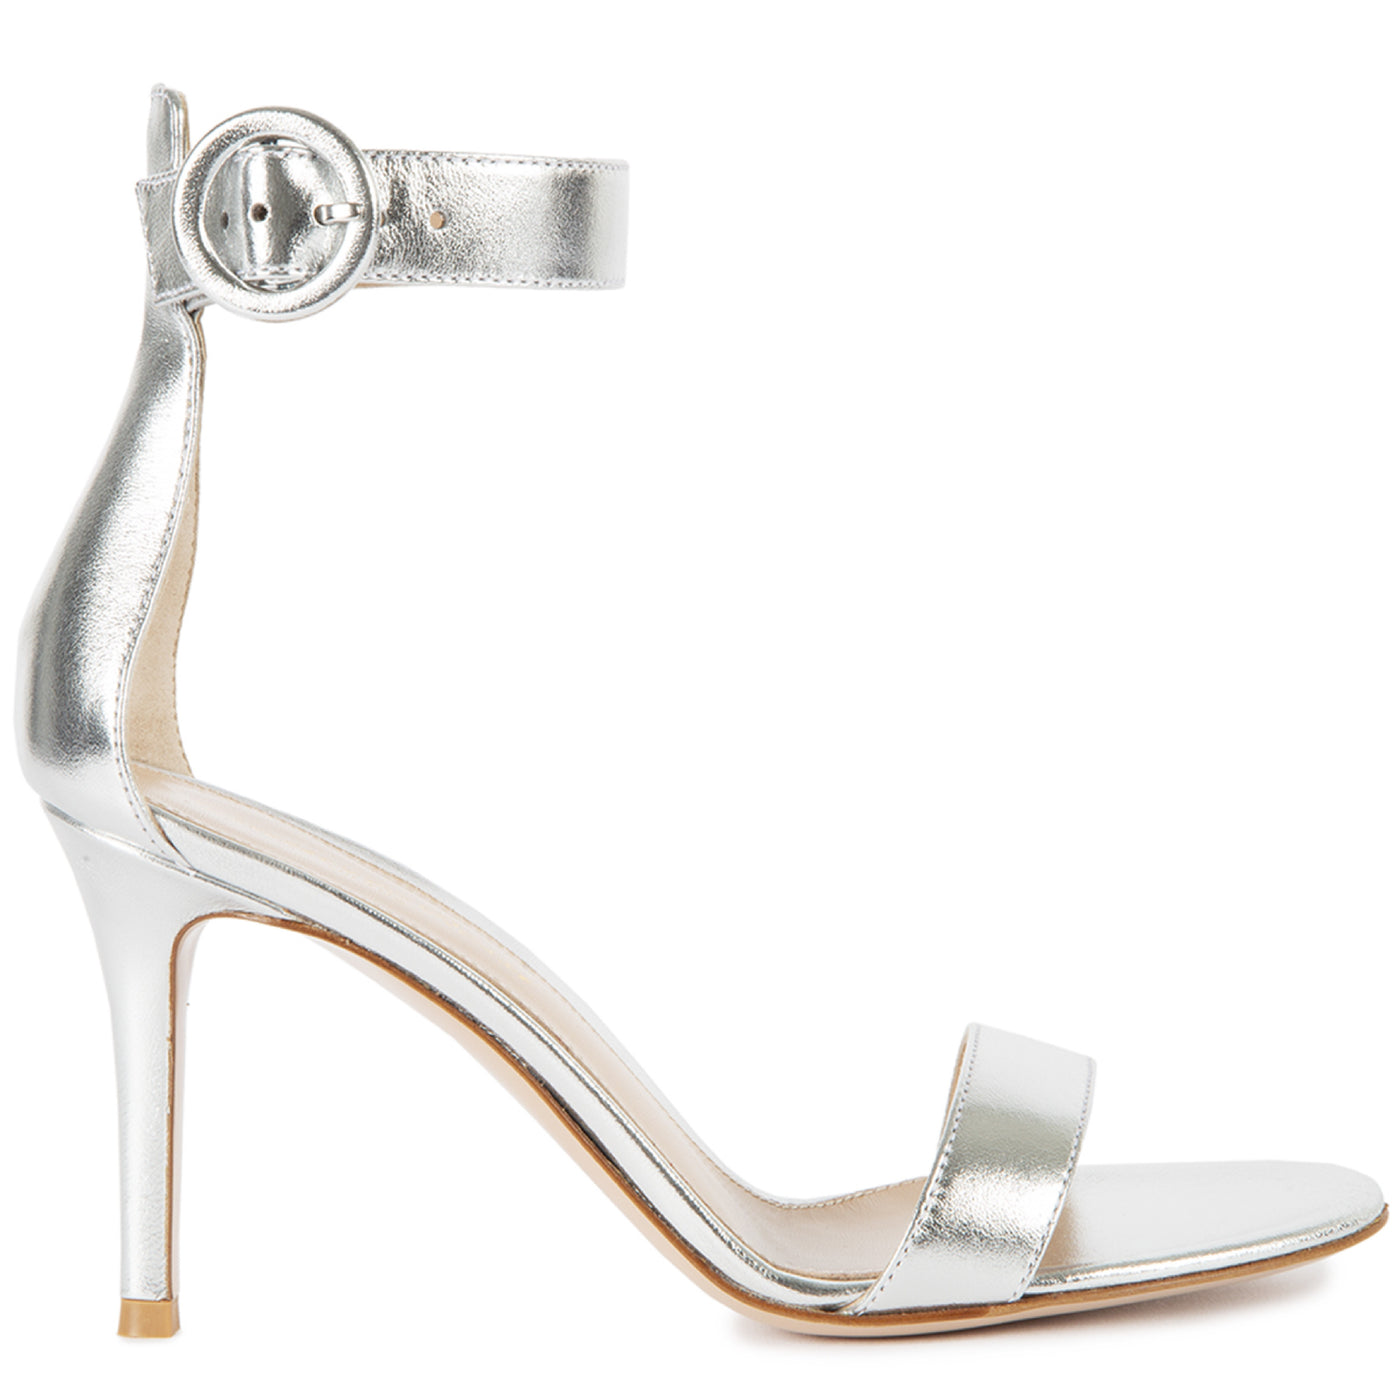 Load image into Gallery viewer, GIANVITO ROSSI NAPPA SILK STRAP SANDALS SILVER